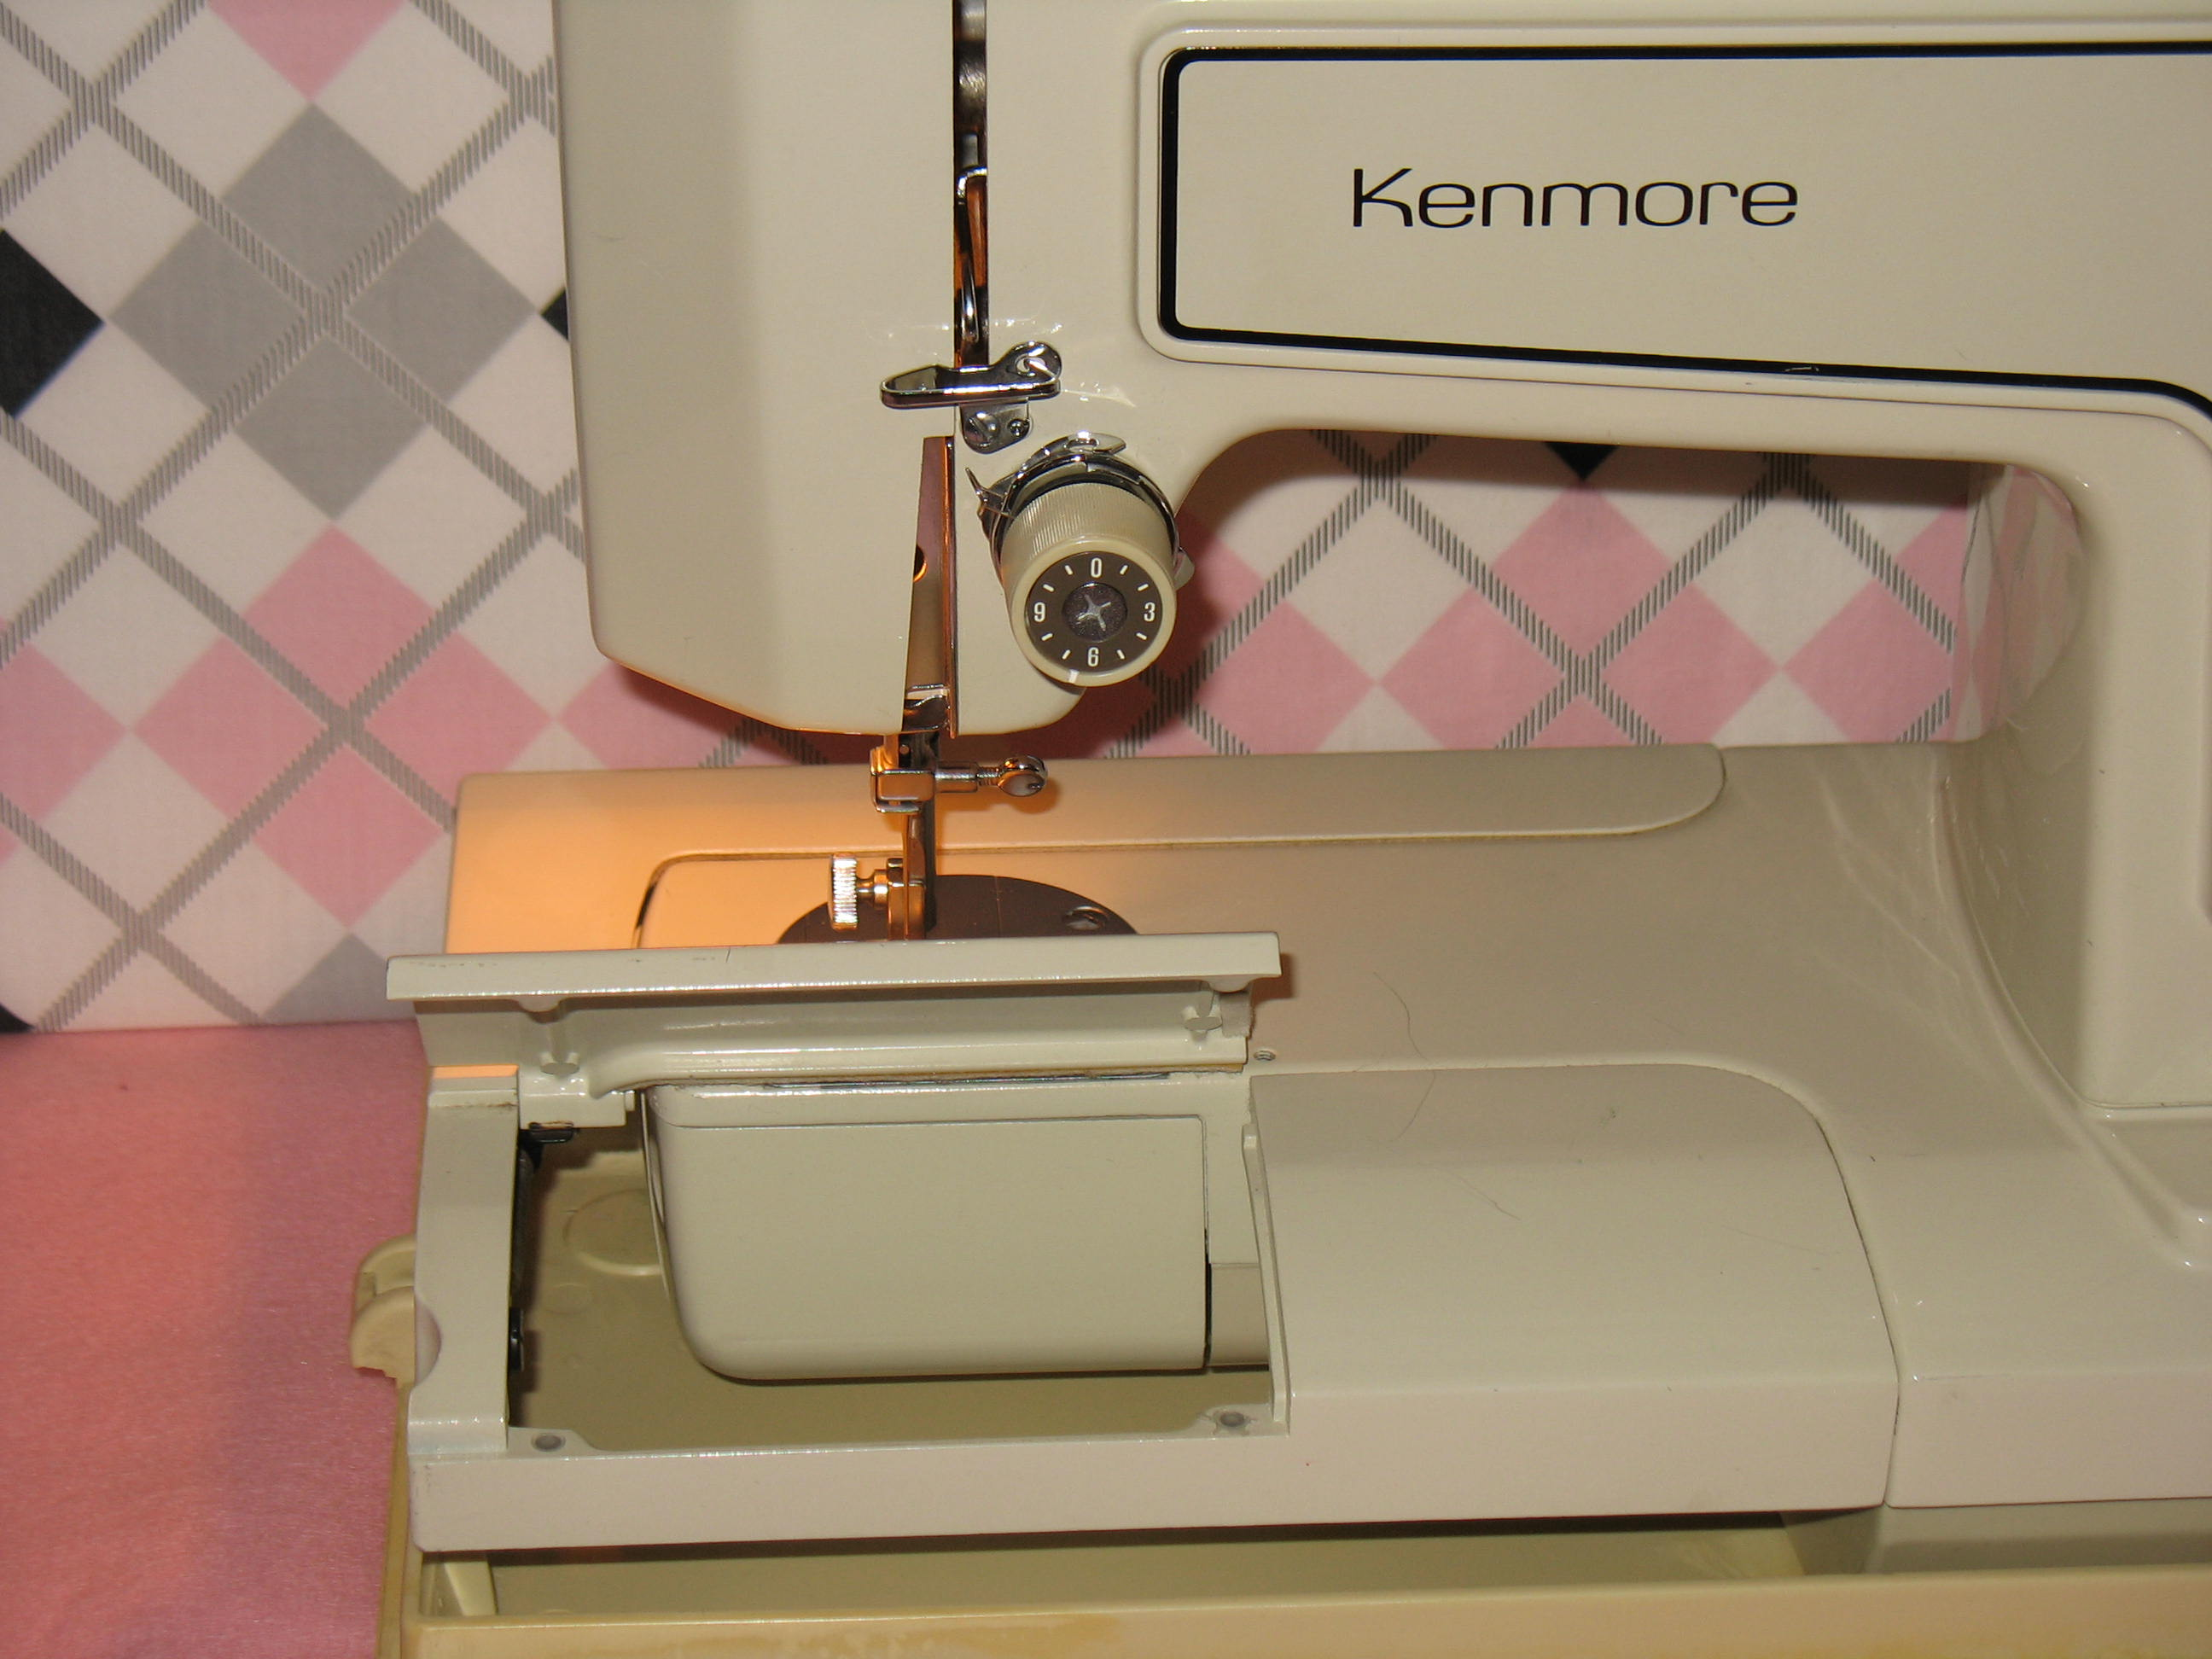 Sears kenmore model 1560 sewing machine a for The kenmore